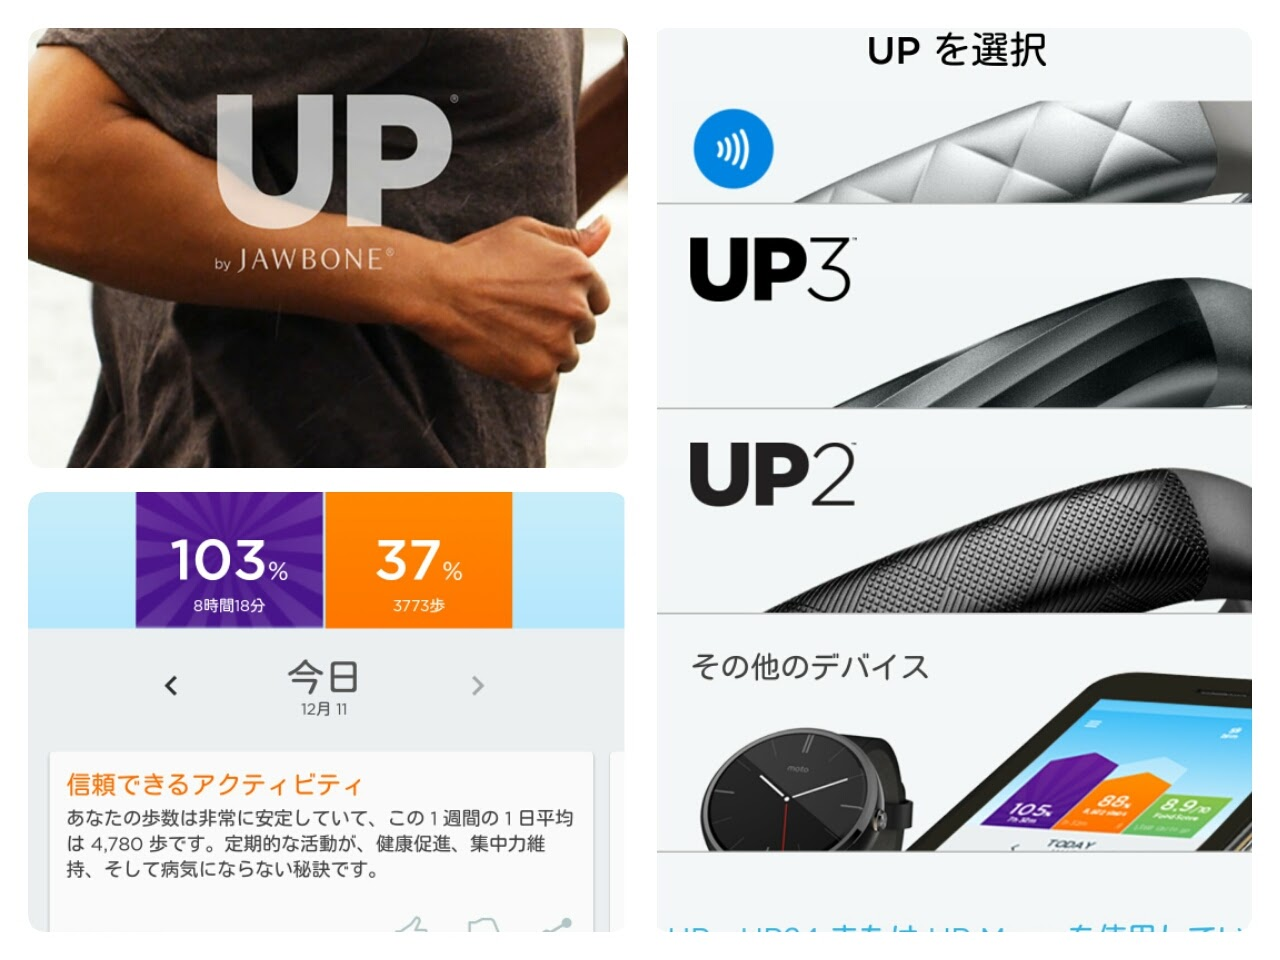 1101-201512_UP by Jawbone